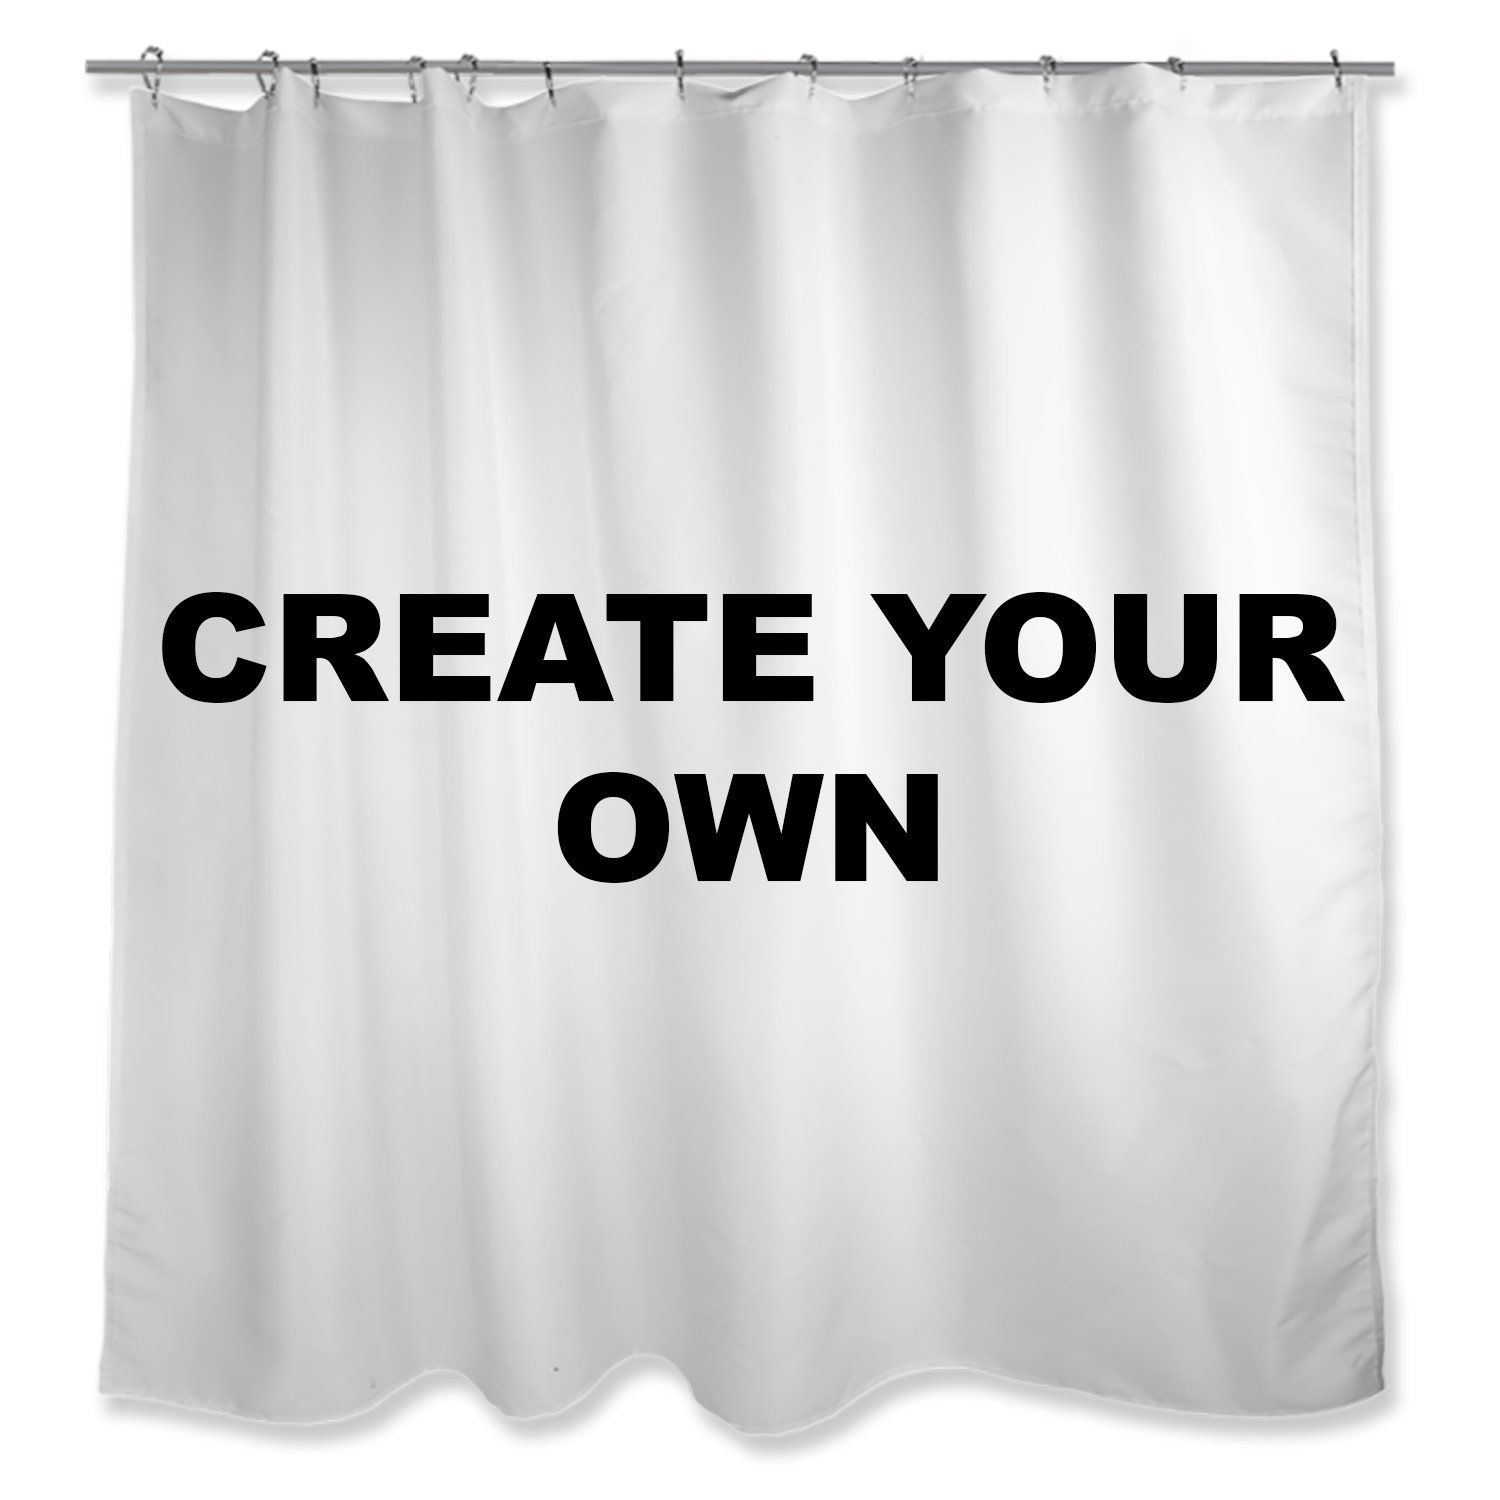 Create Your Own Shower Curtain In 2020 Curtains Shower Curtain